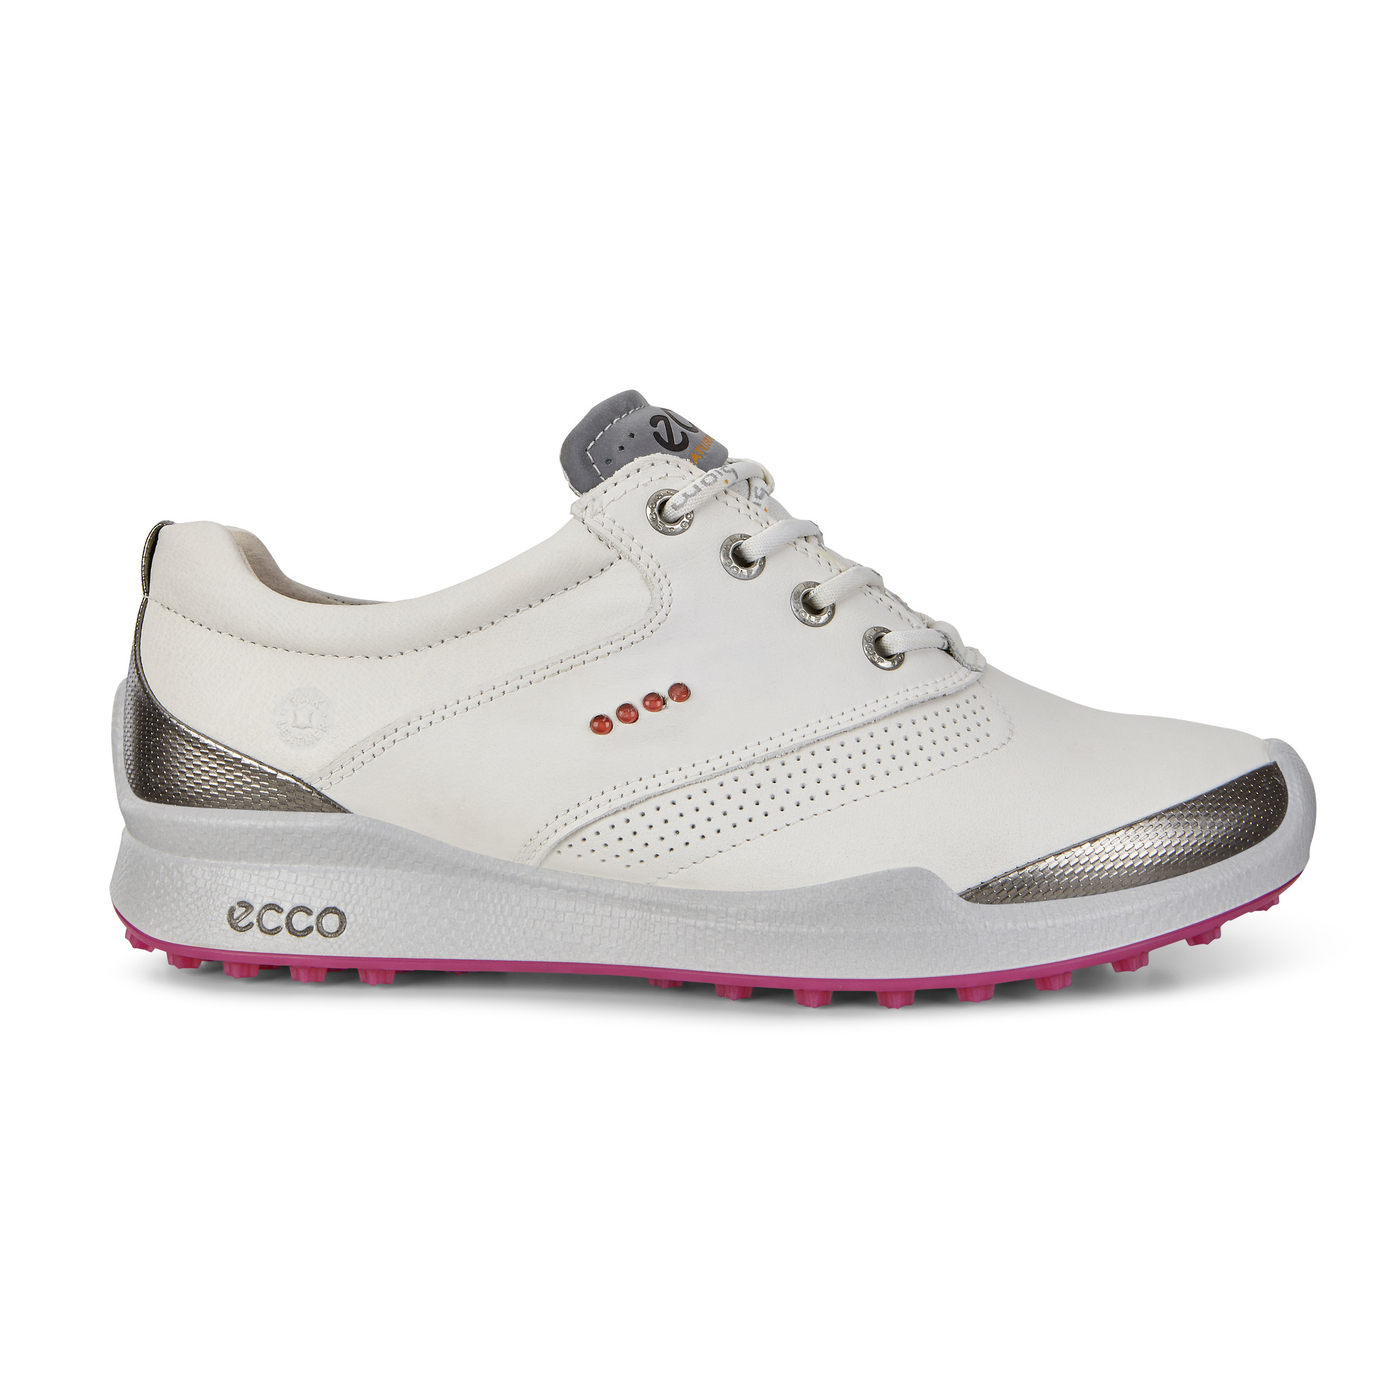 ECCO WOMENS BIOM GOLF HYBRID G